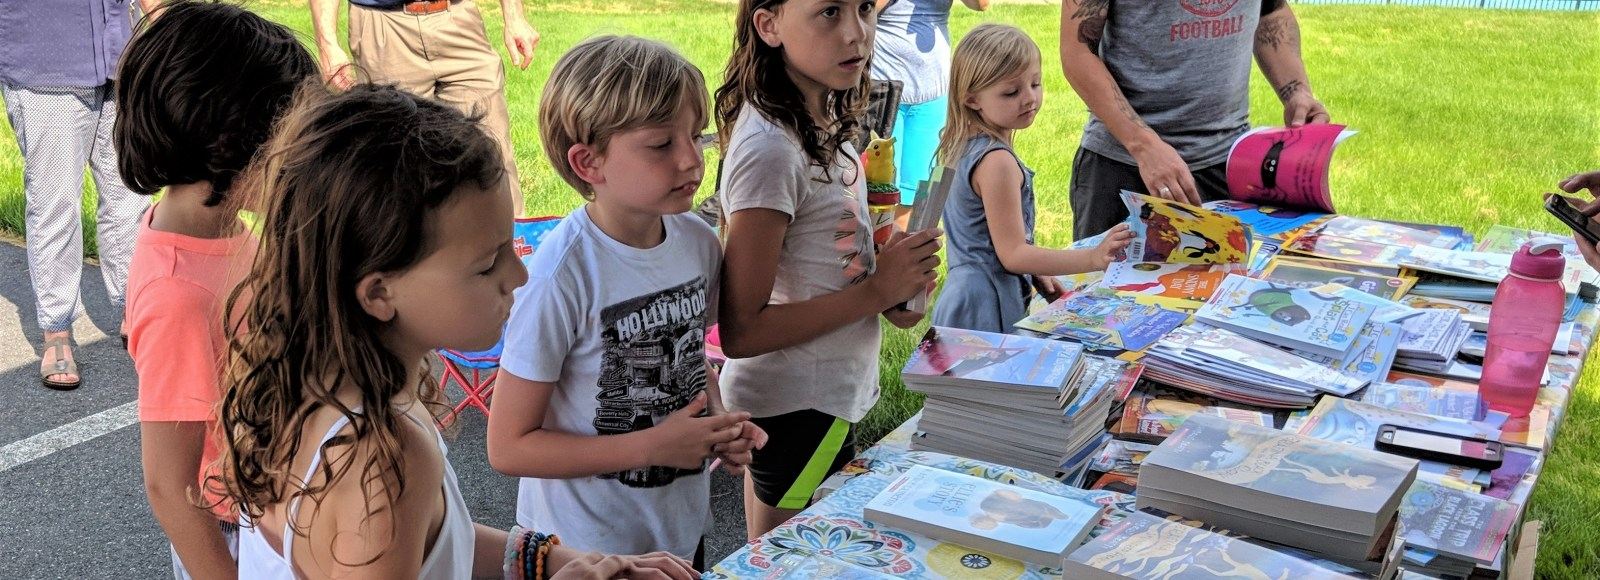 Literacy Outreach distributes more than 200 books in Penn Manor neighborhoods